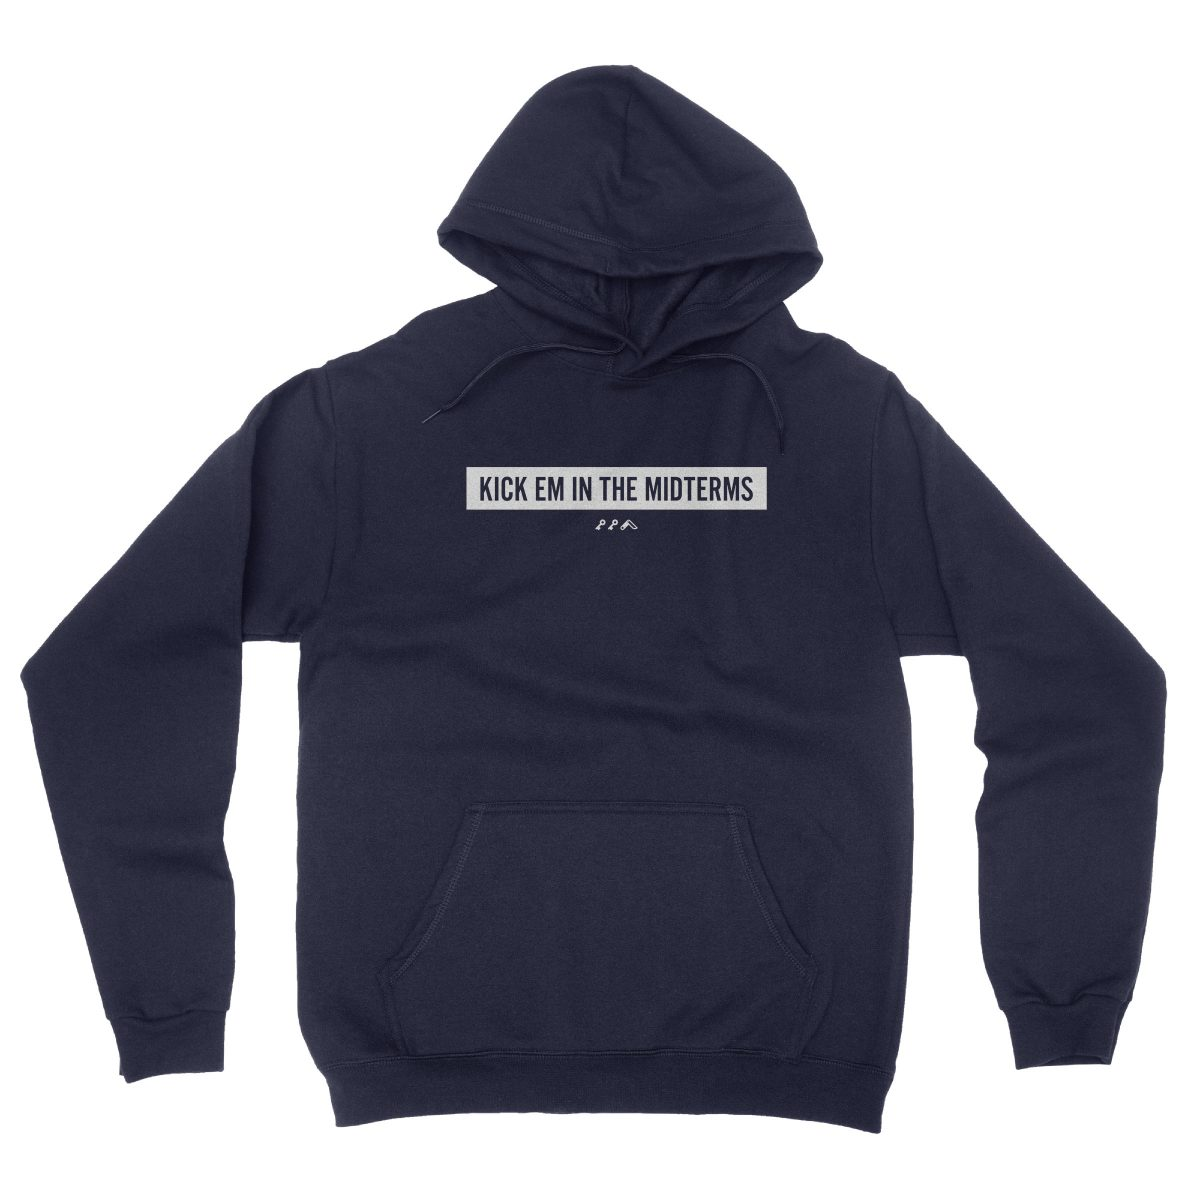 """KICK EM IN THE MIDTERMS"" funny political hoodie in navy"